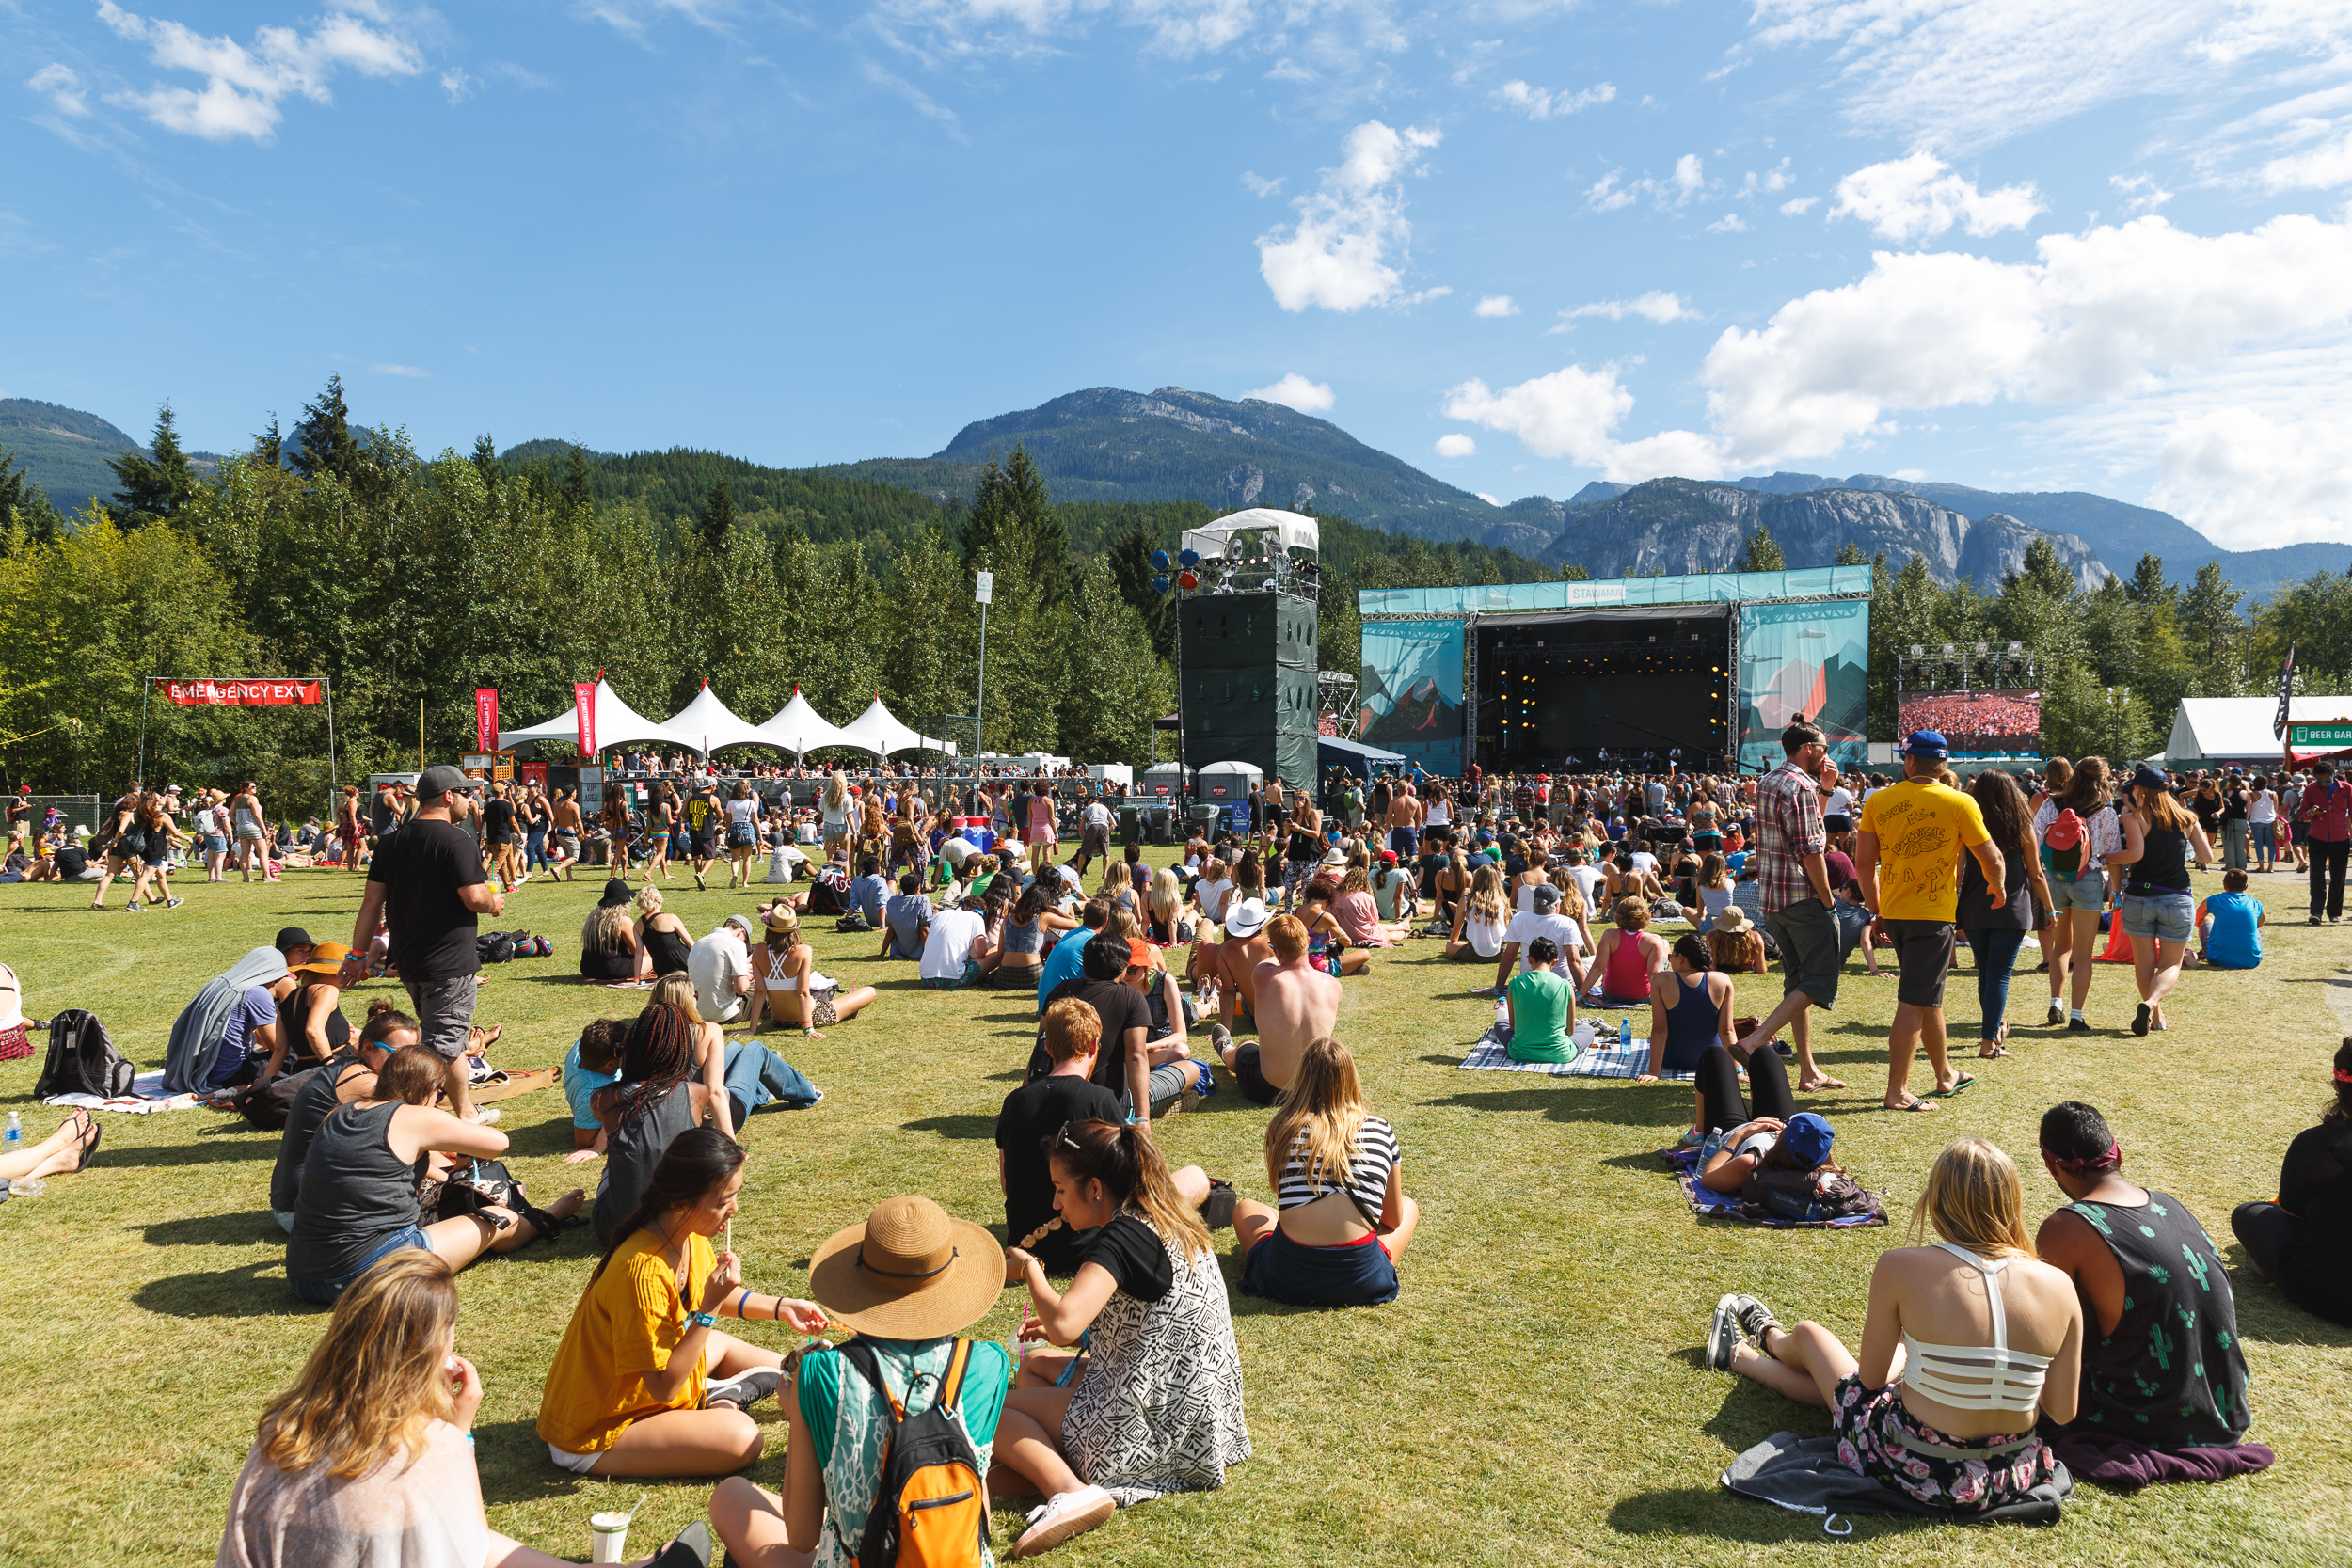 Squamish-Valley-Music-Festival-image-35.jpg